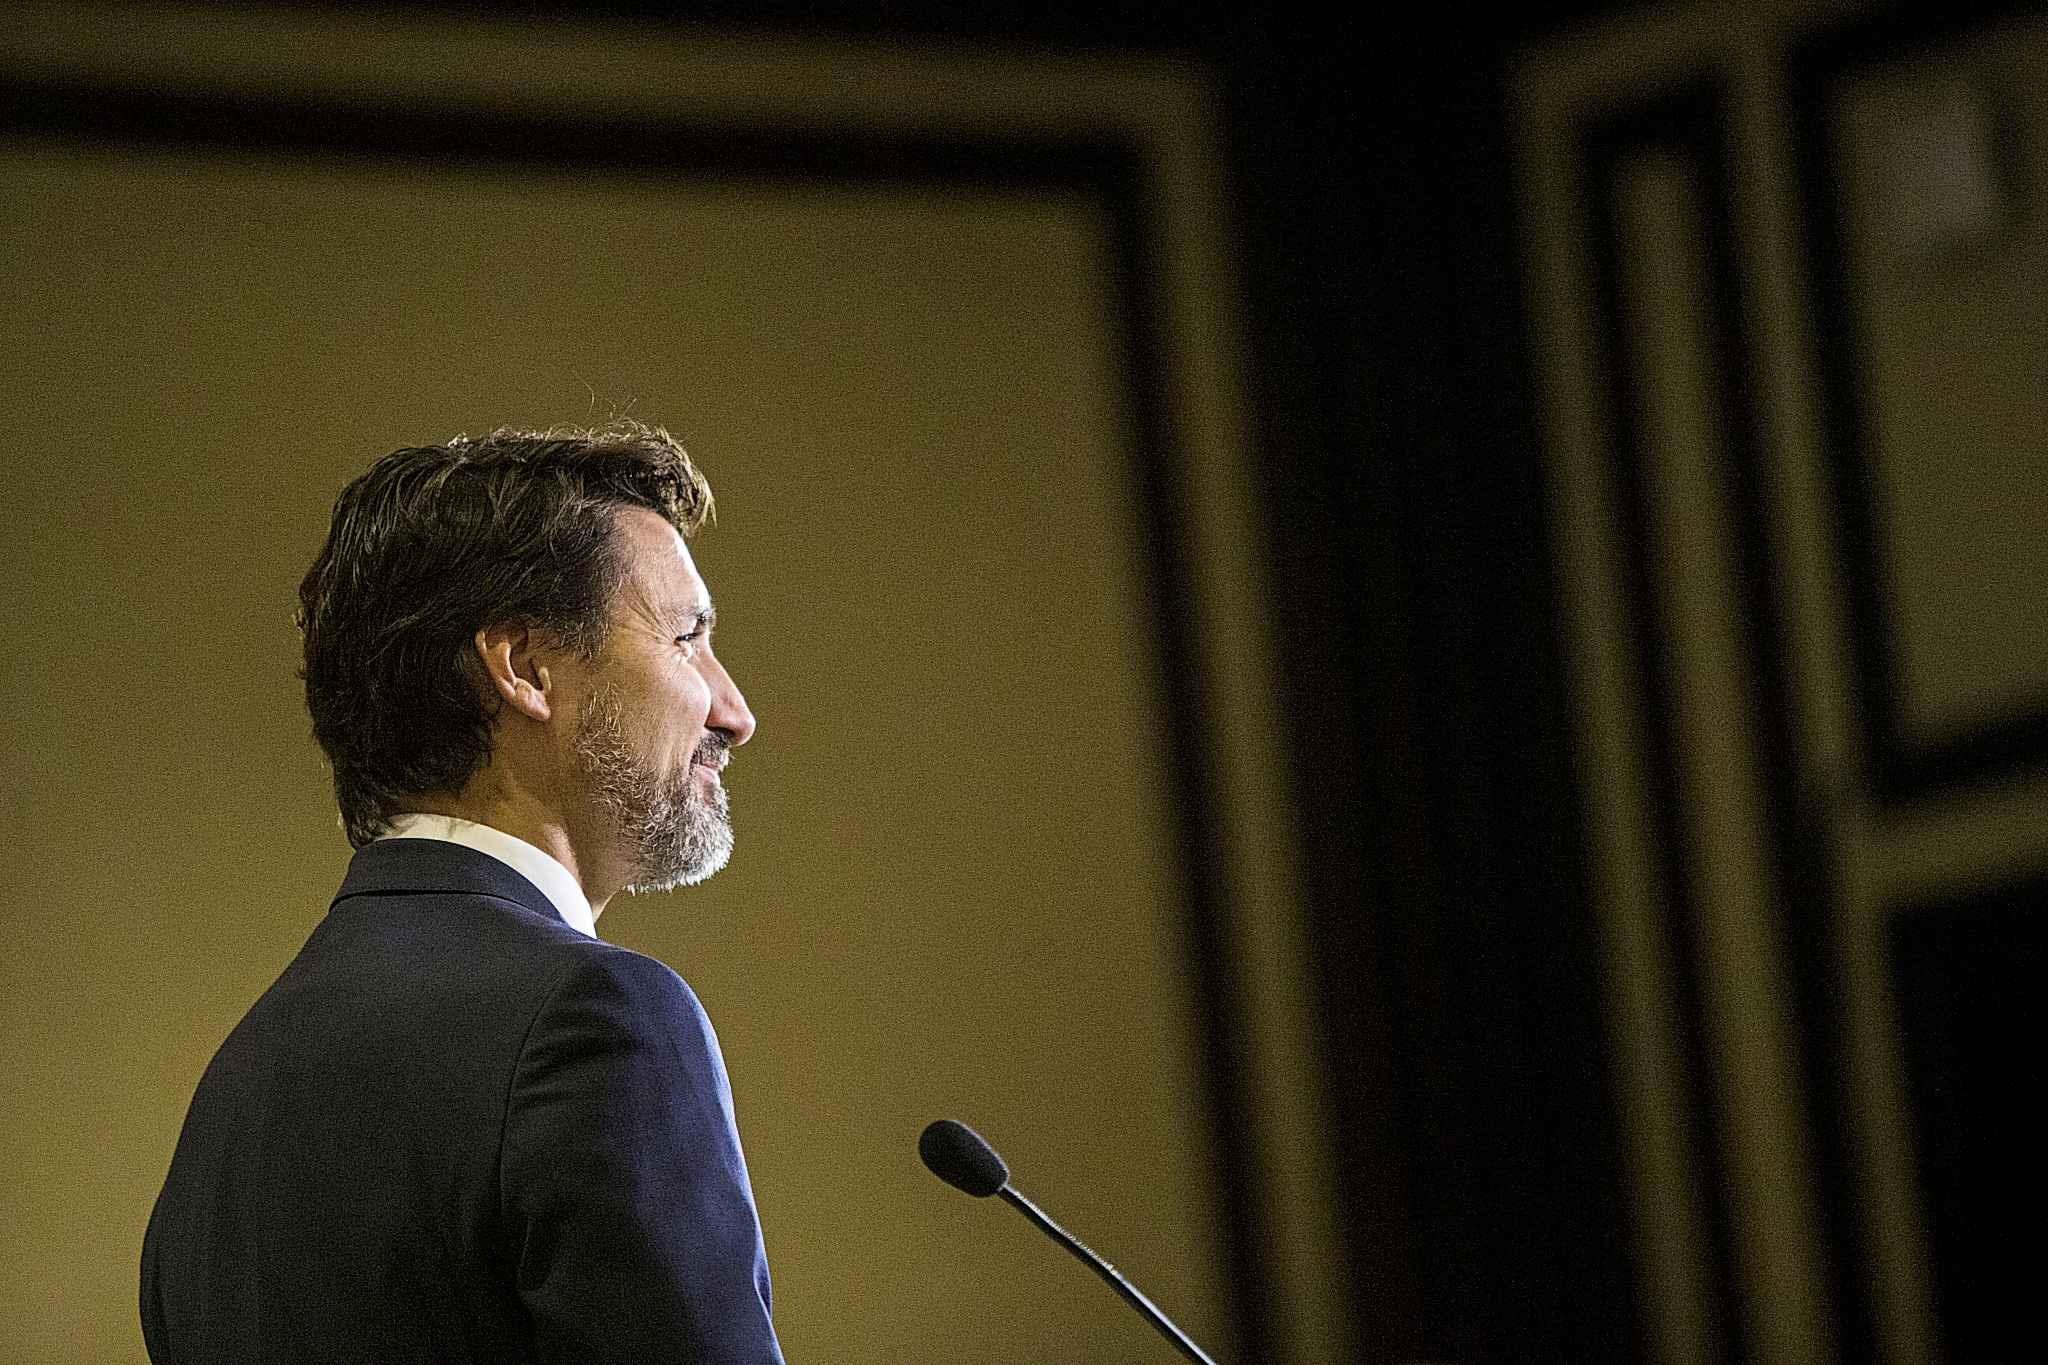 Now, everything Trudeau says and does is an opportunity for criticism. (Mikaela MacKenzie / Free Press files)